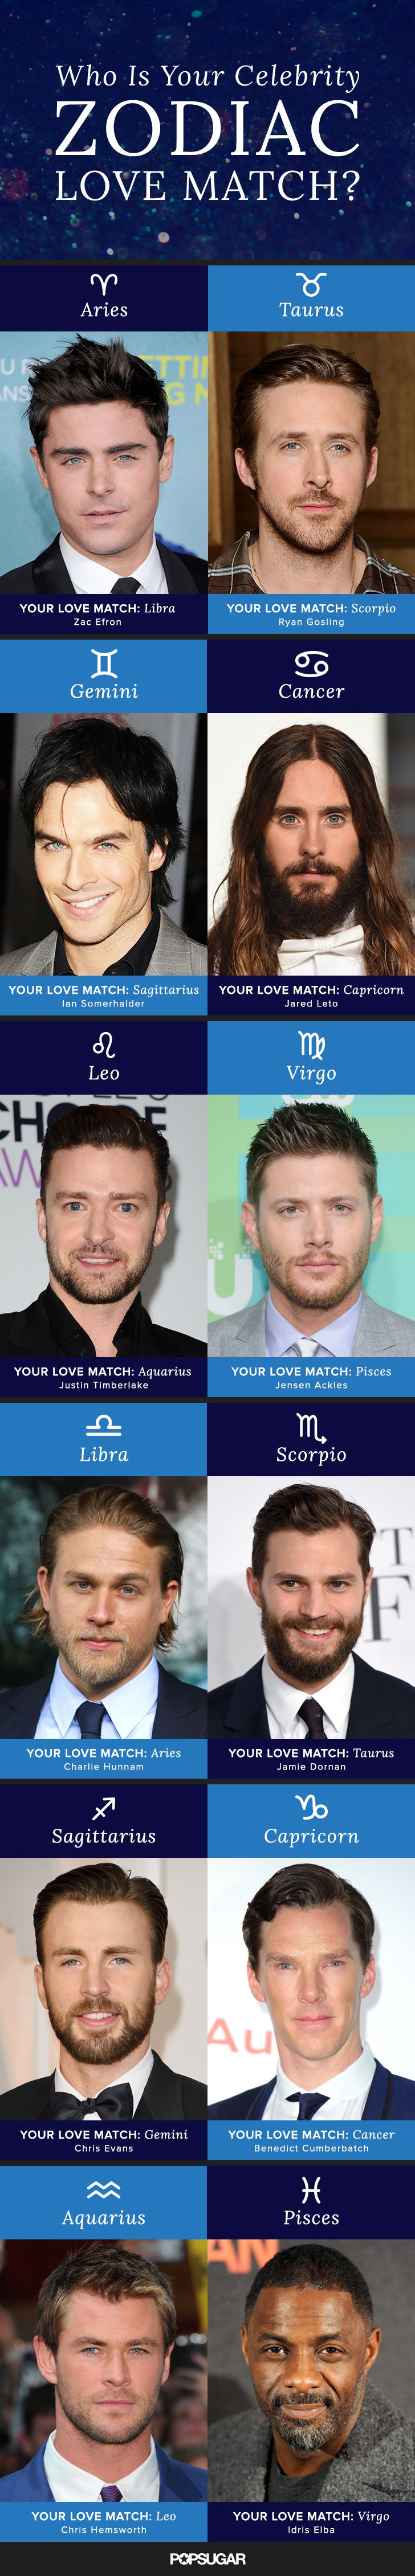 Astrology Matches Sagittarius And Aries Celebrity